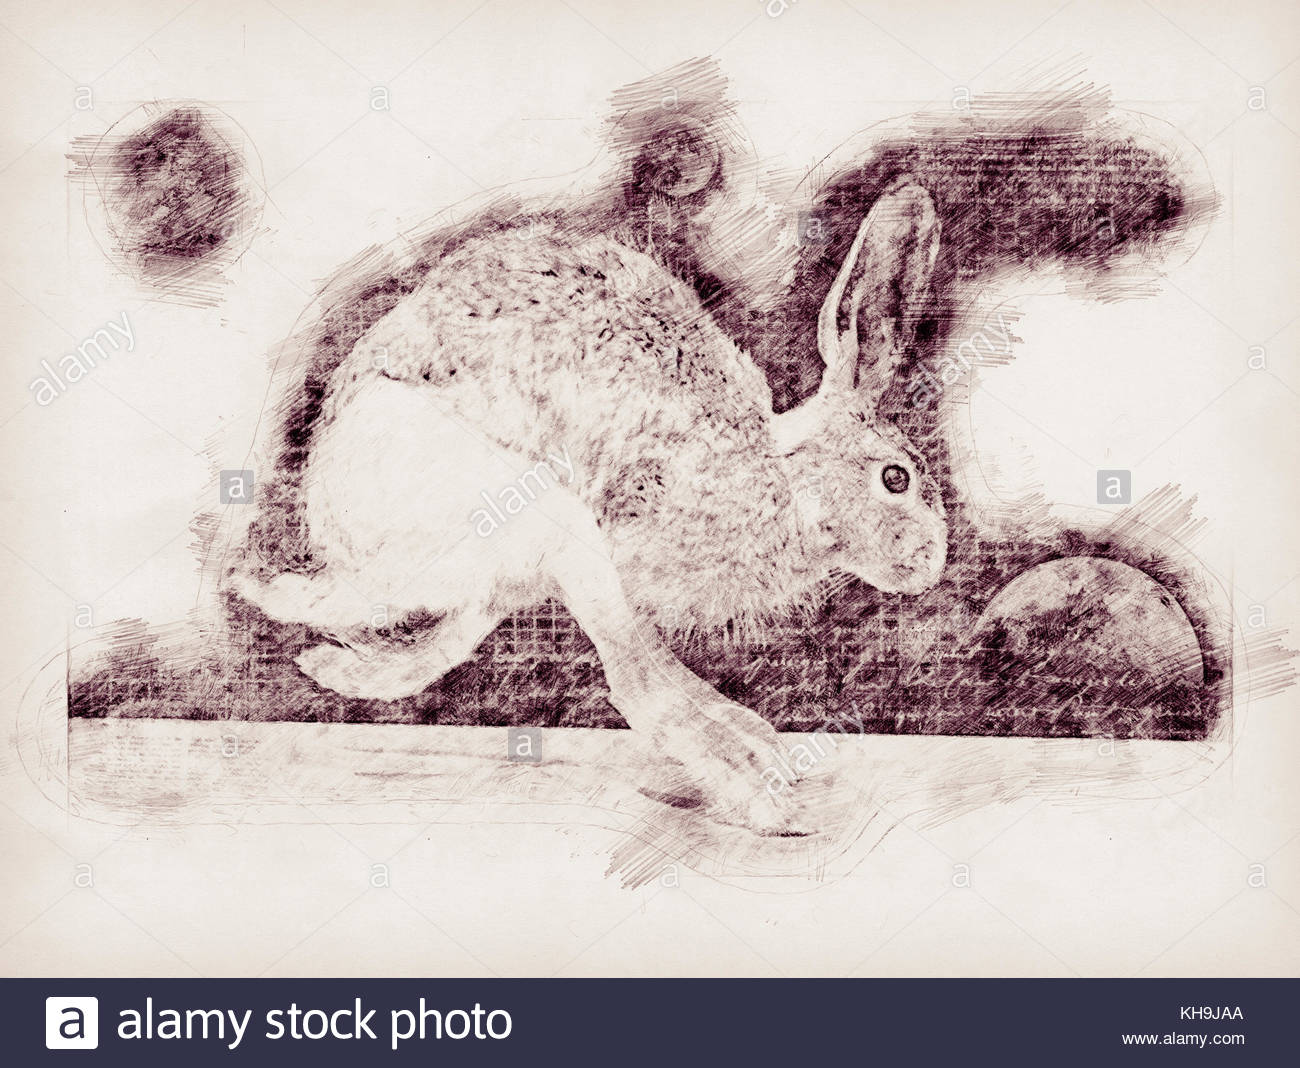 1300x1068 A Pencil Drawing Of A Jack Rabbit In Mid Stride With Grid